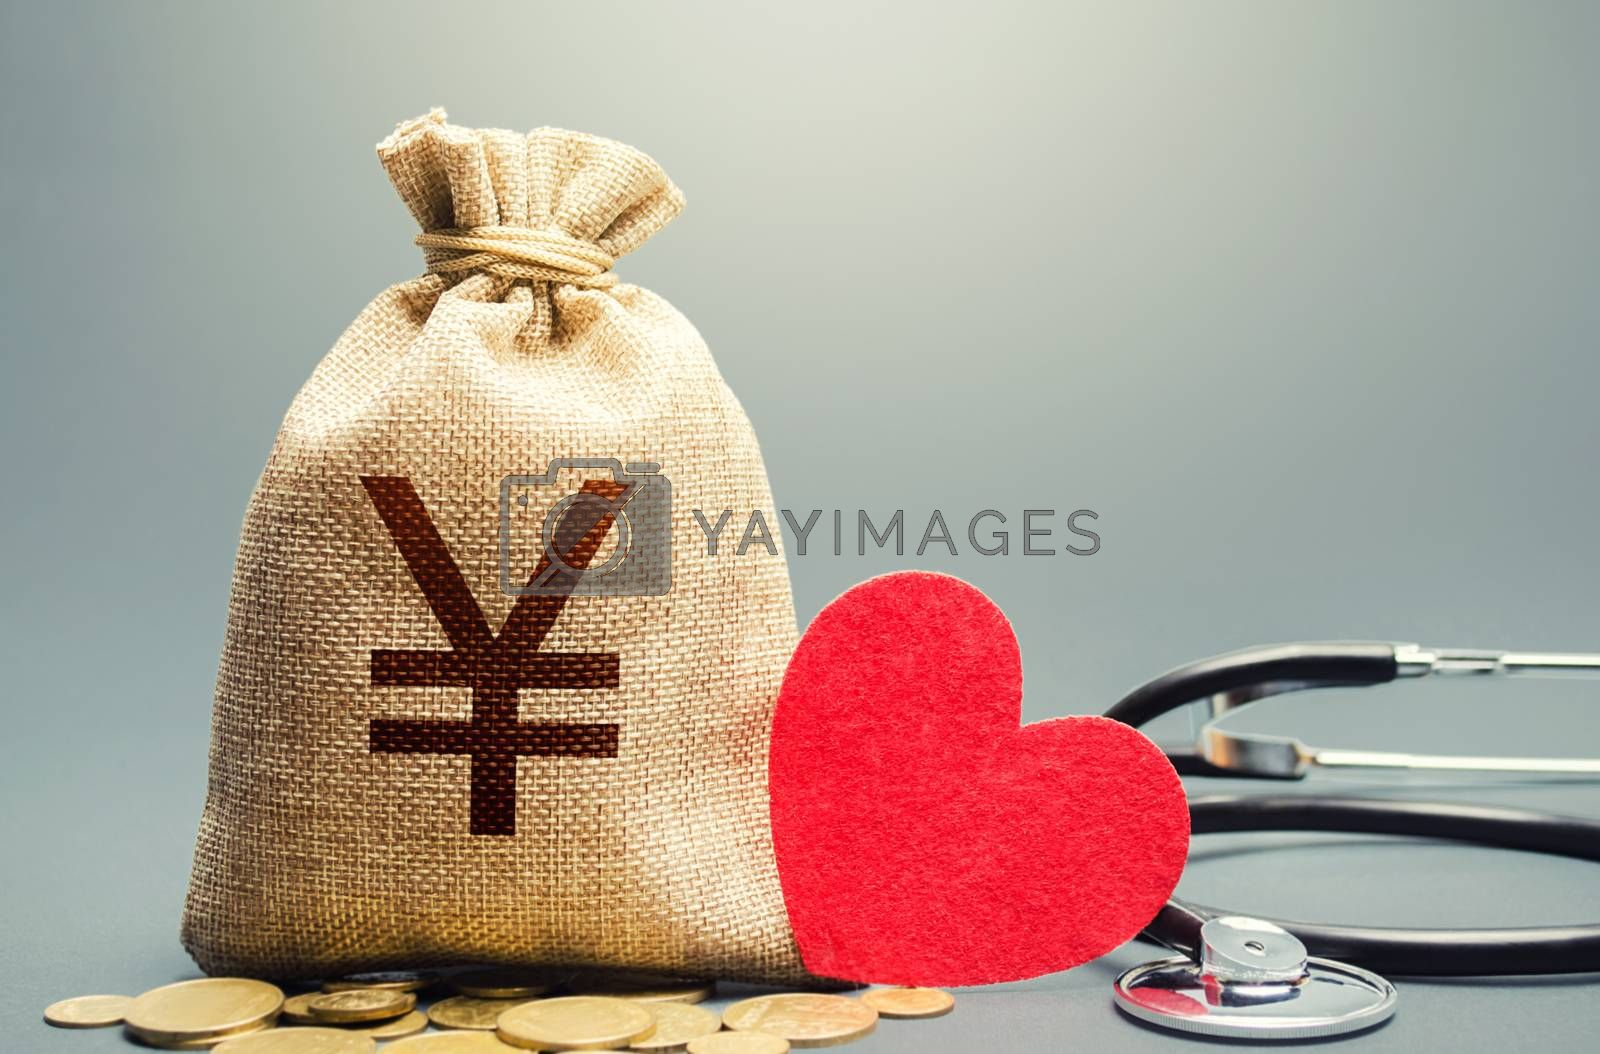 Yen Yuan money bag and stethoscope. Health life insurance financing concept. Funding healthcare system. Reforming and preparing for new challenges. Development, modernization. Subsidies, investments